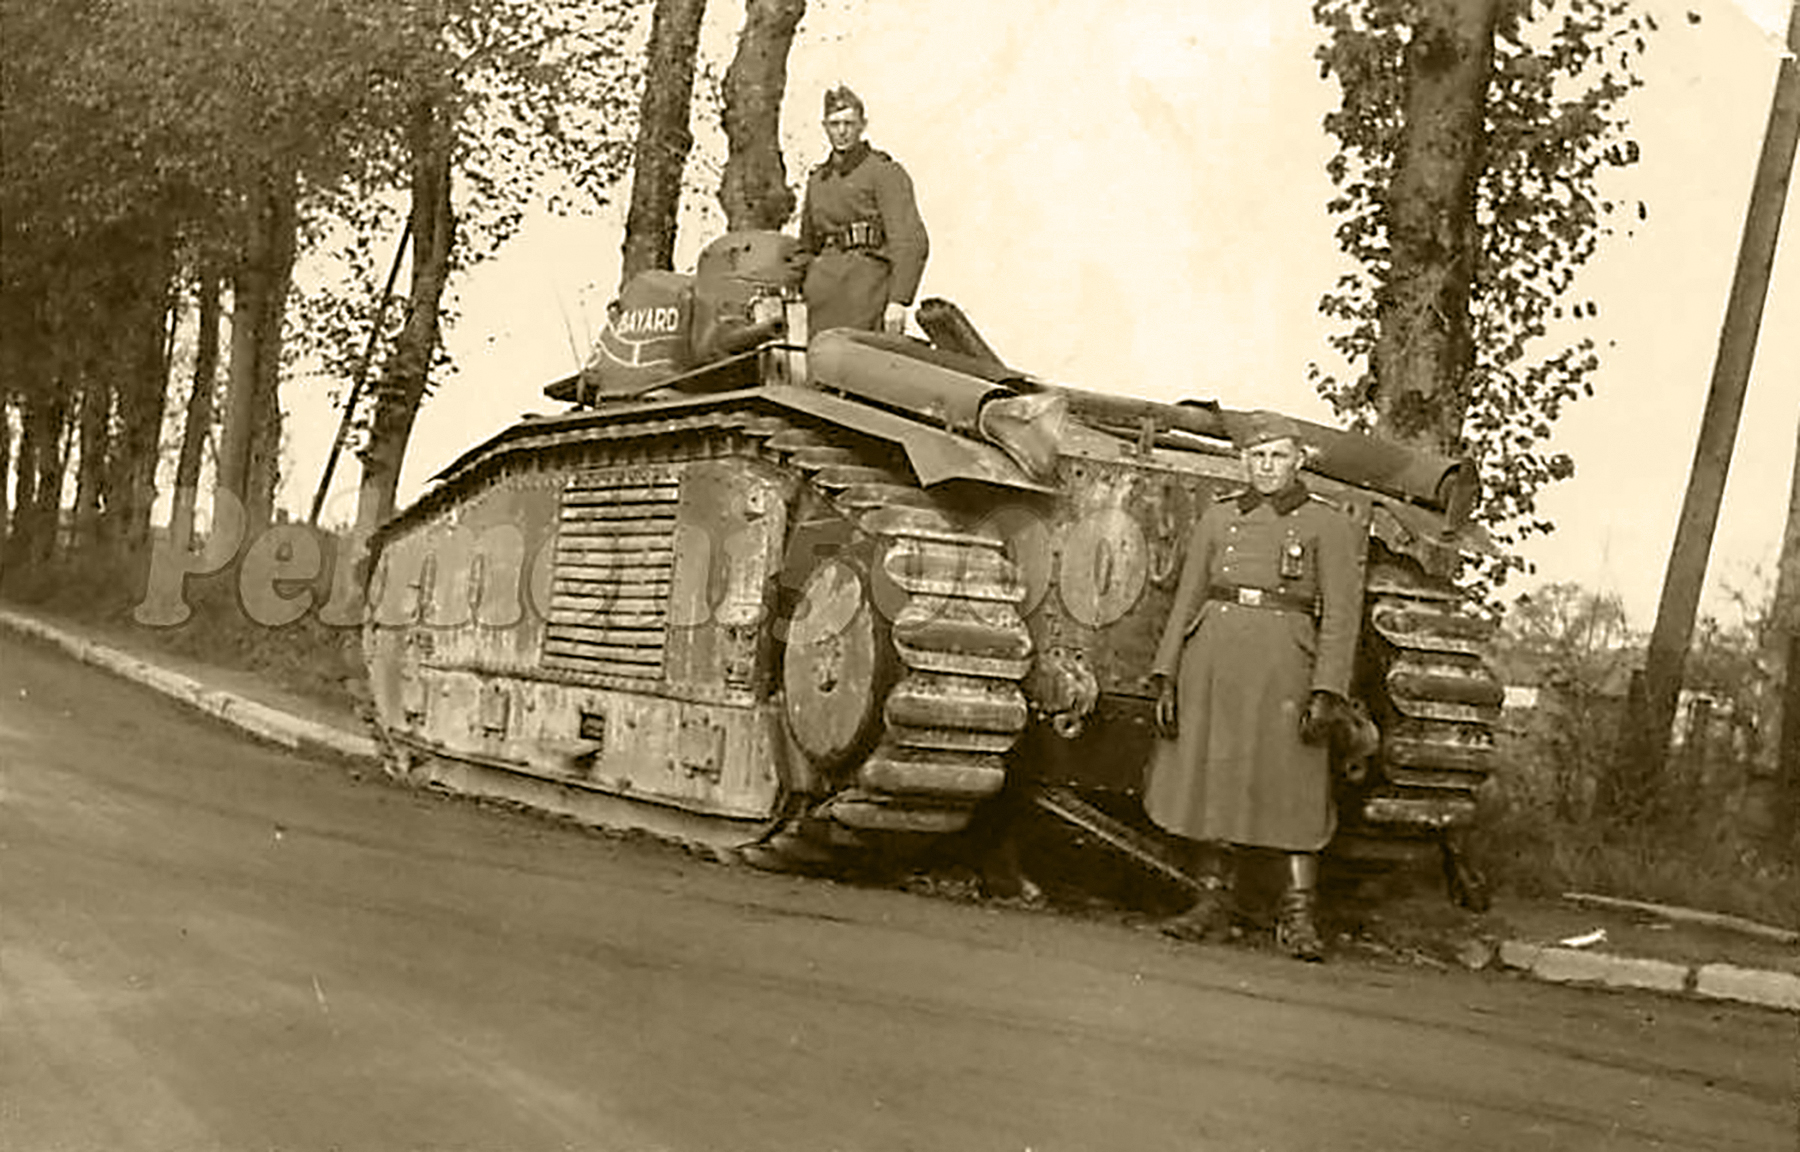 French Army Renault Char B1bis abandoned during the battle of France 1940 ebay 01